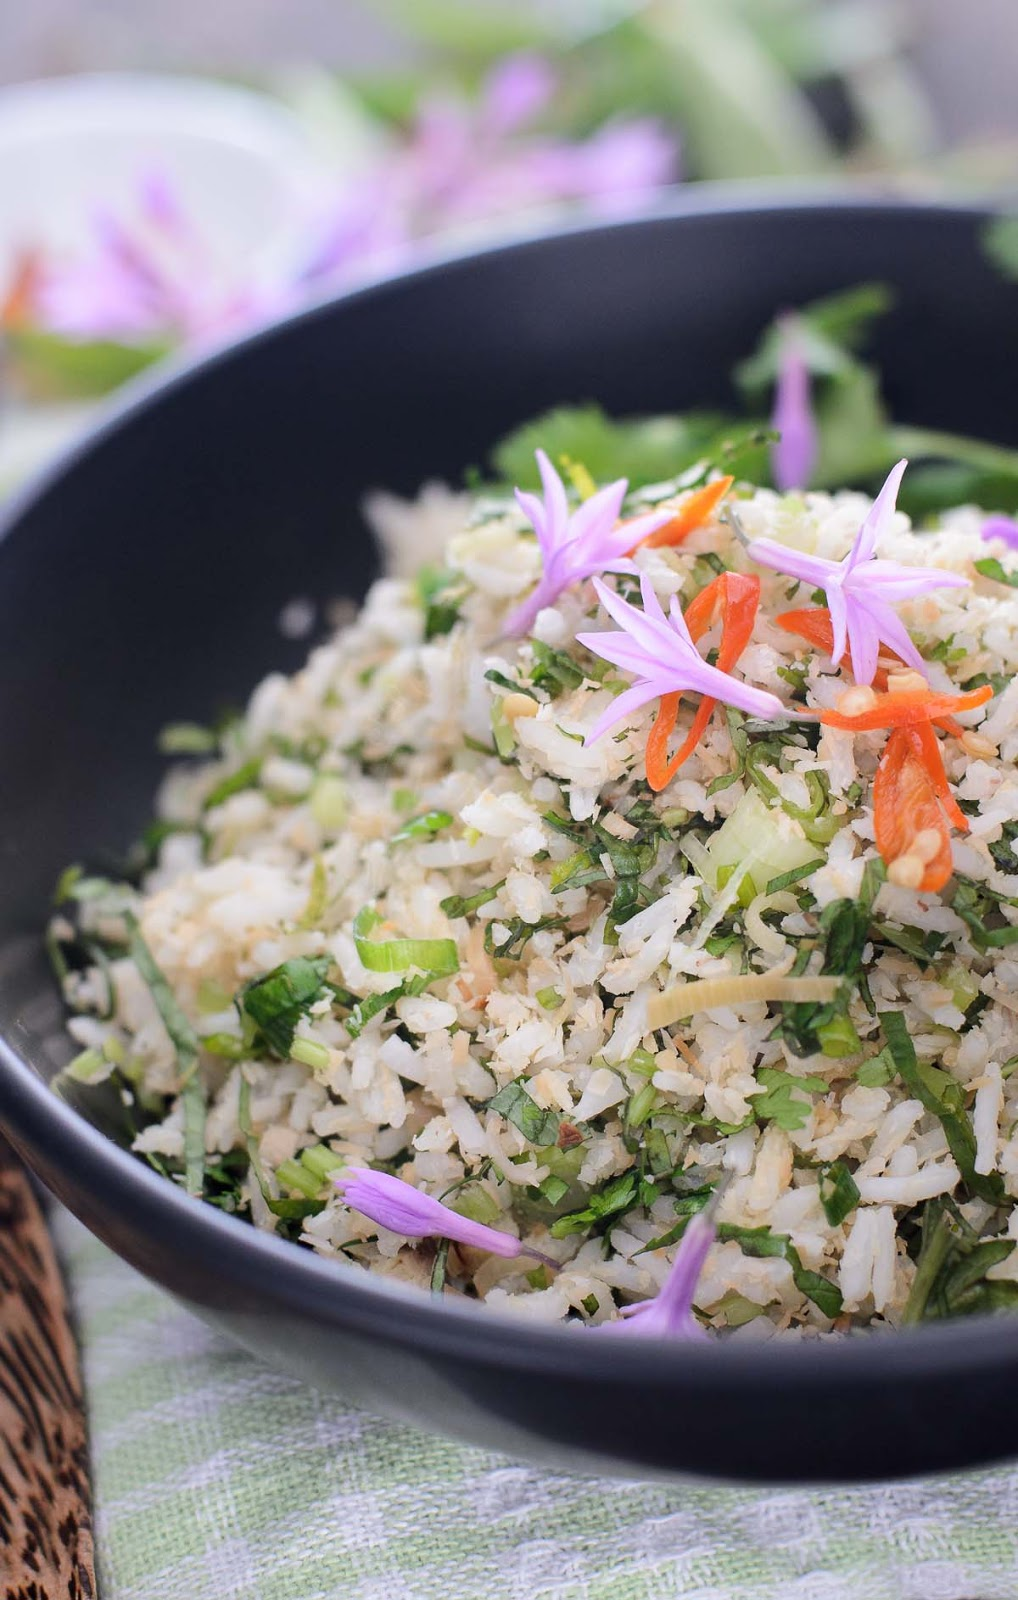 Asian Garden Herb and Rice Salad recipe